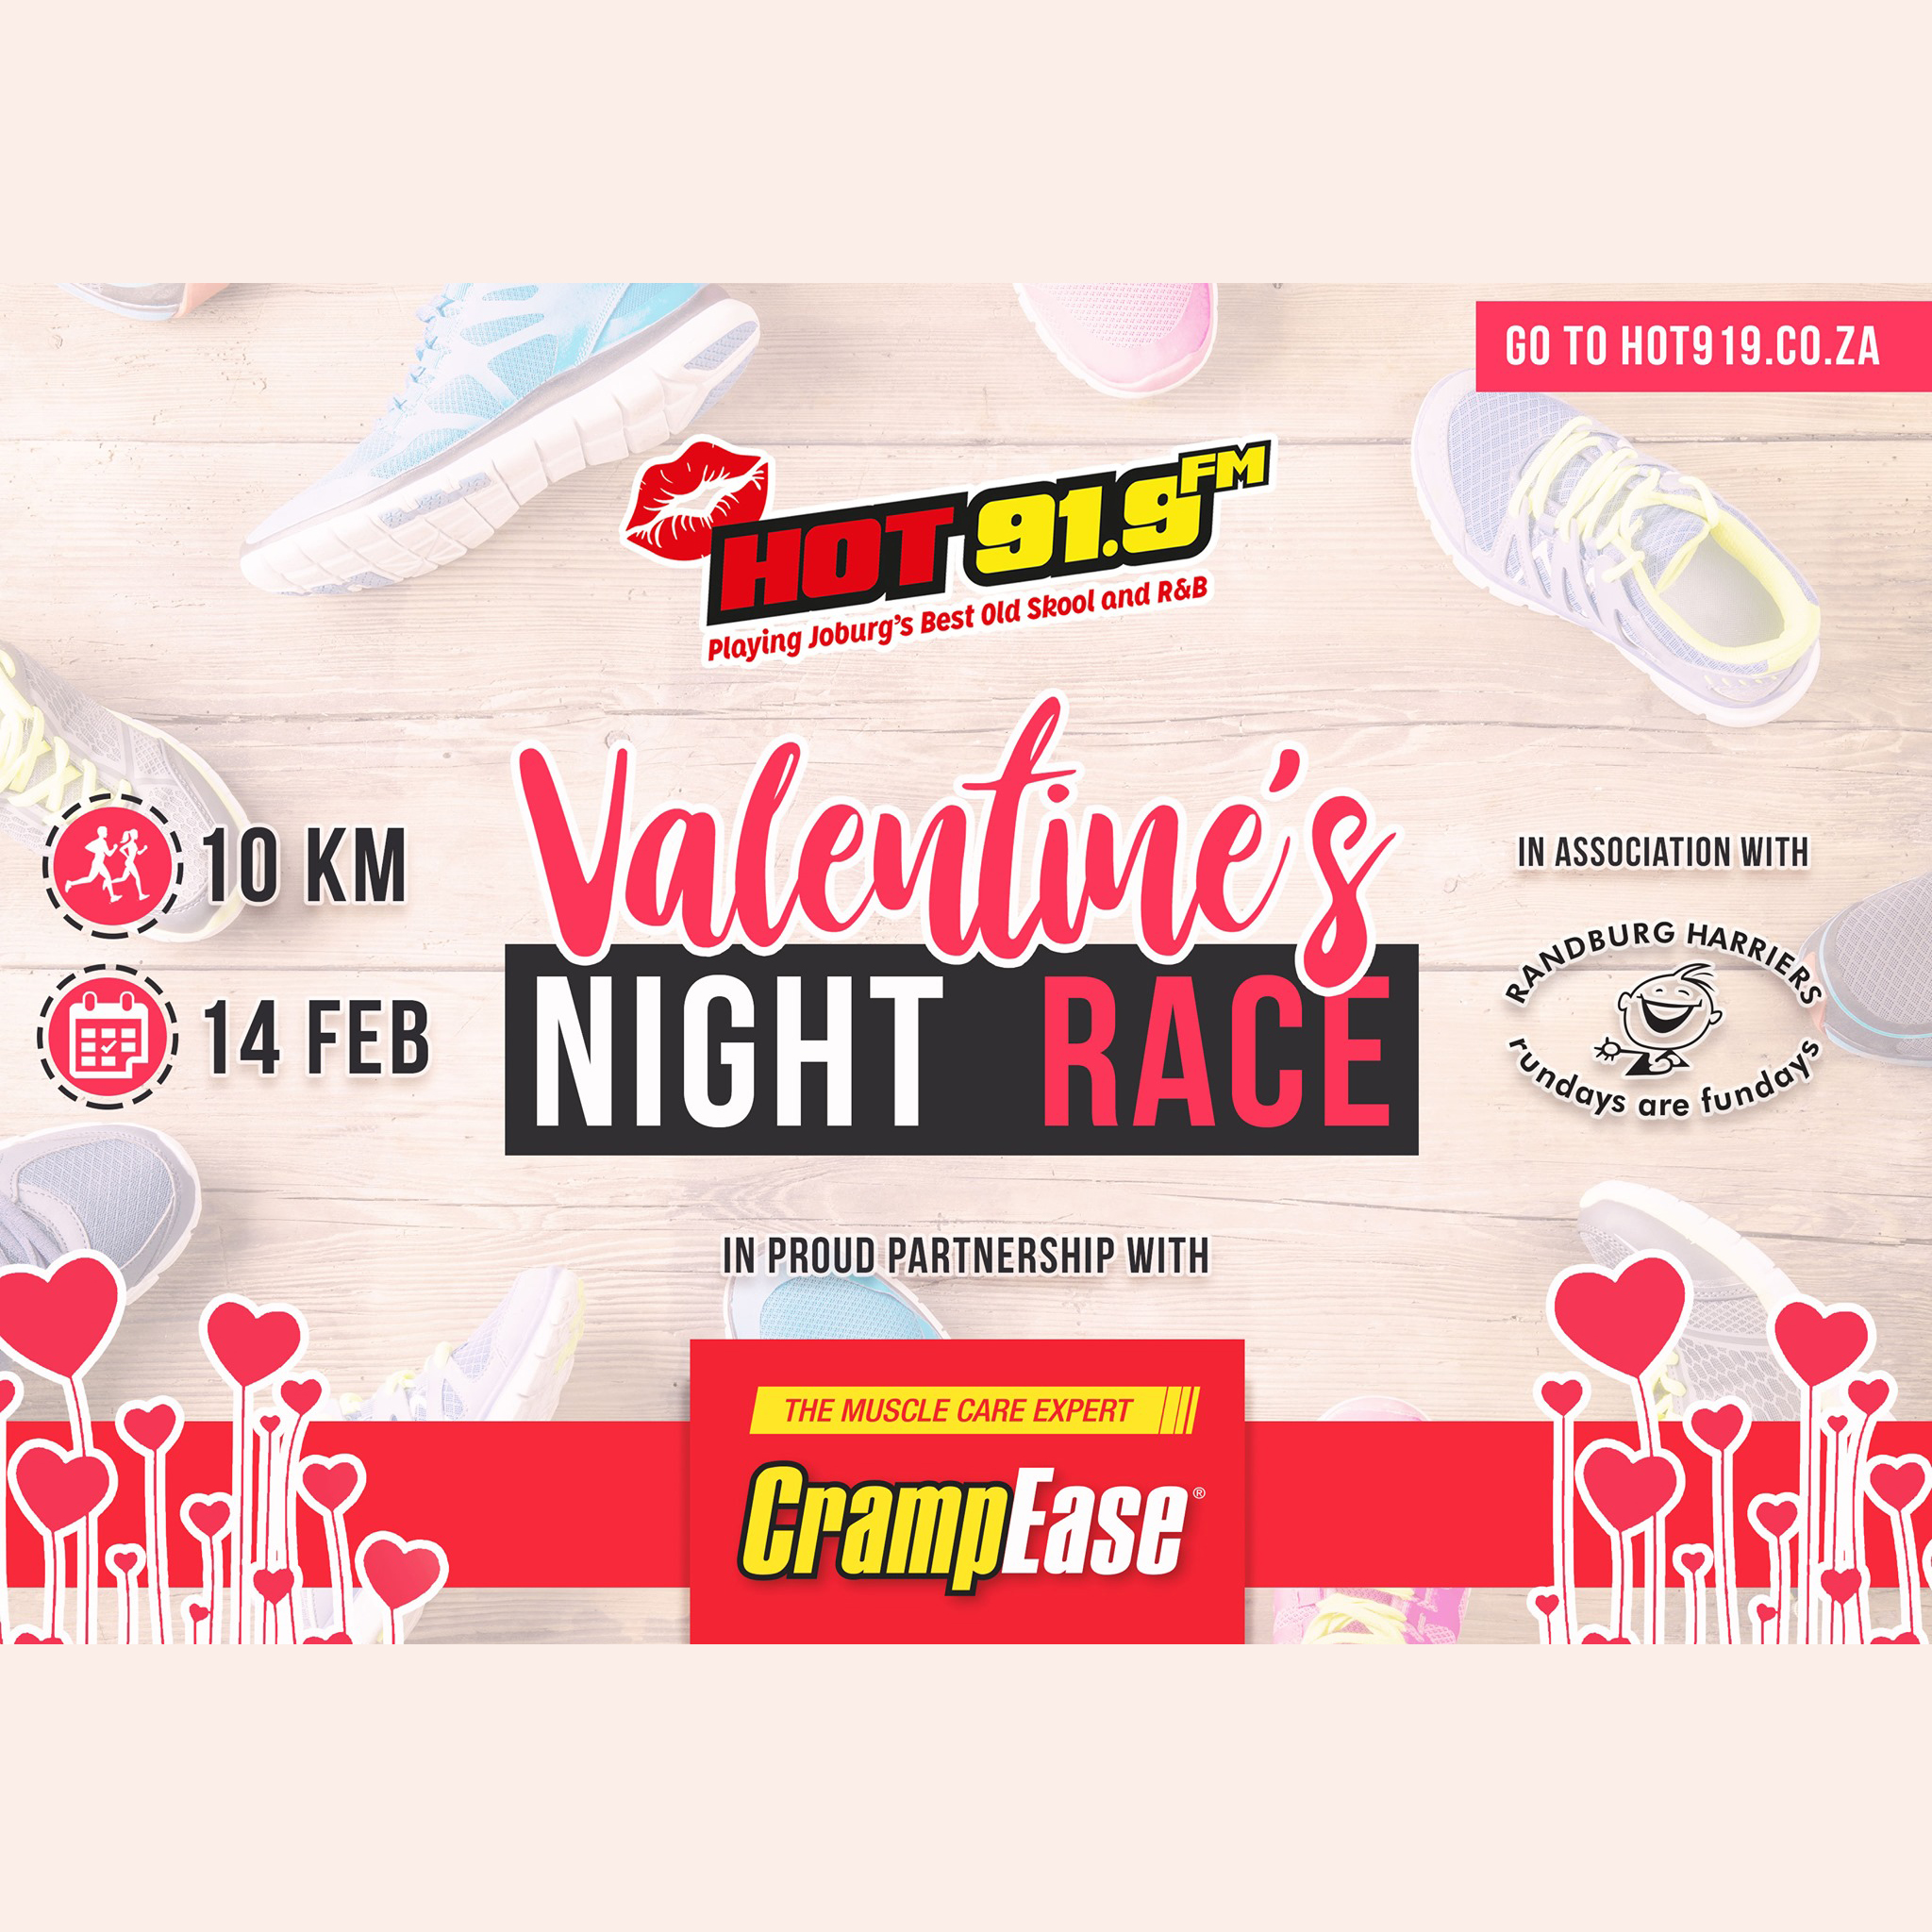 HOT 91.9 Valentine's Night Race (2020)